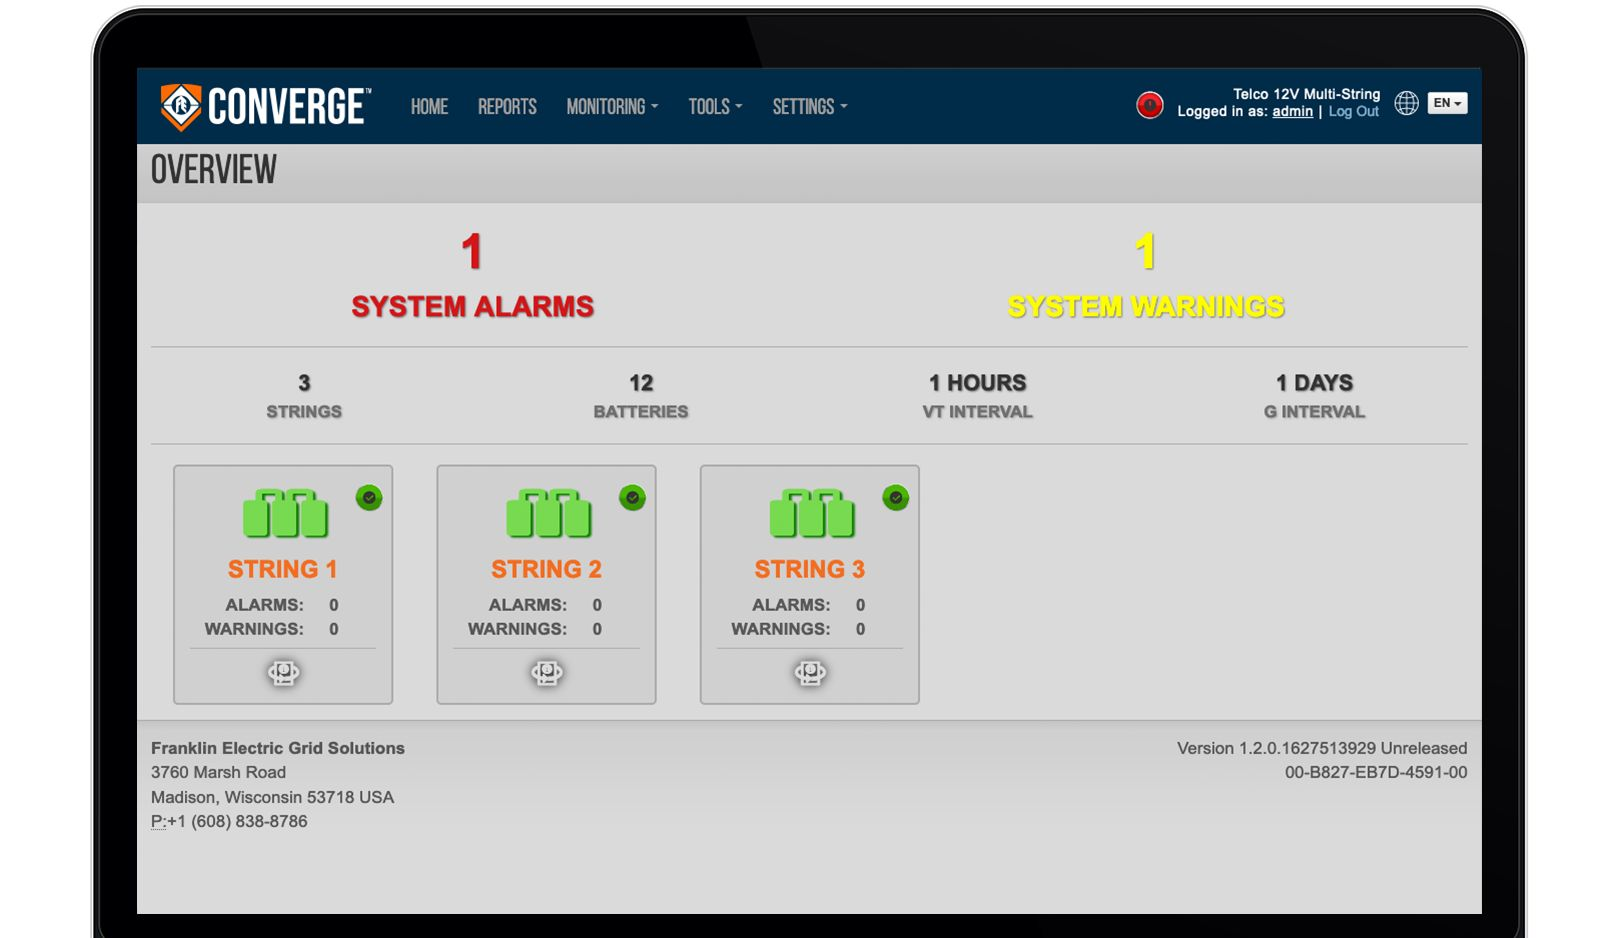 CELLGUARD Wireless - Converge - Overview.psd